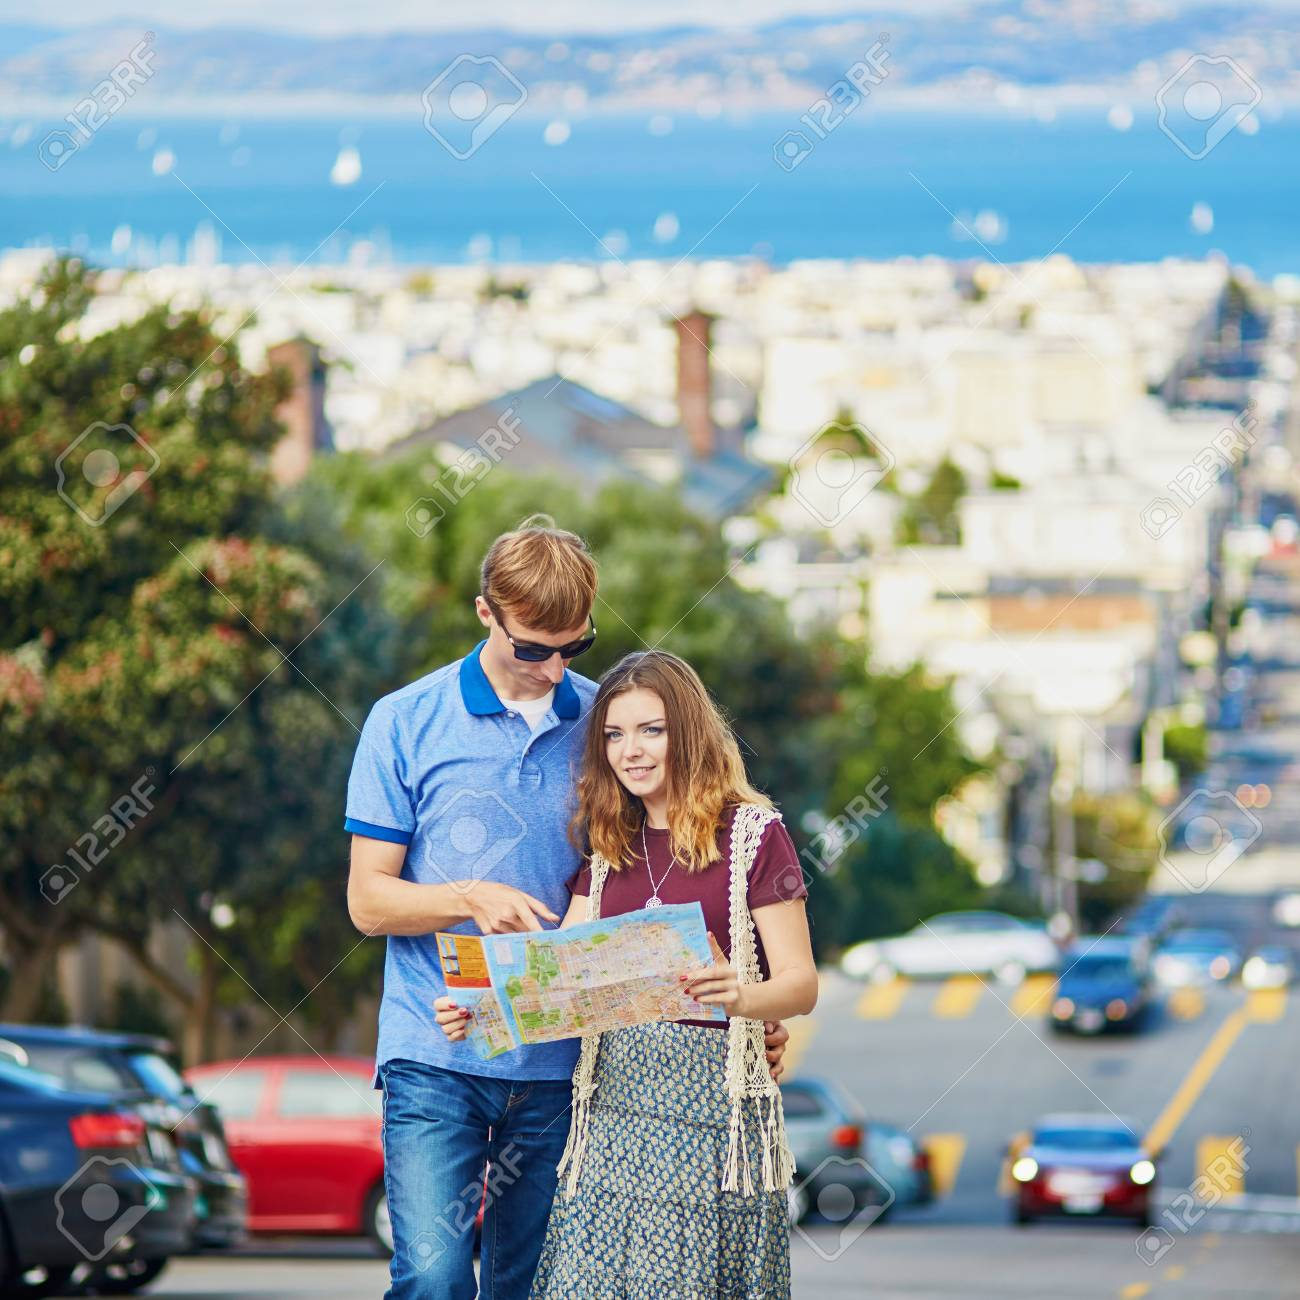 Romantic couple of tourists using map and planning their itinerary